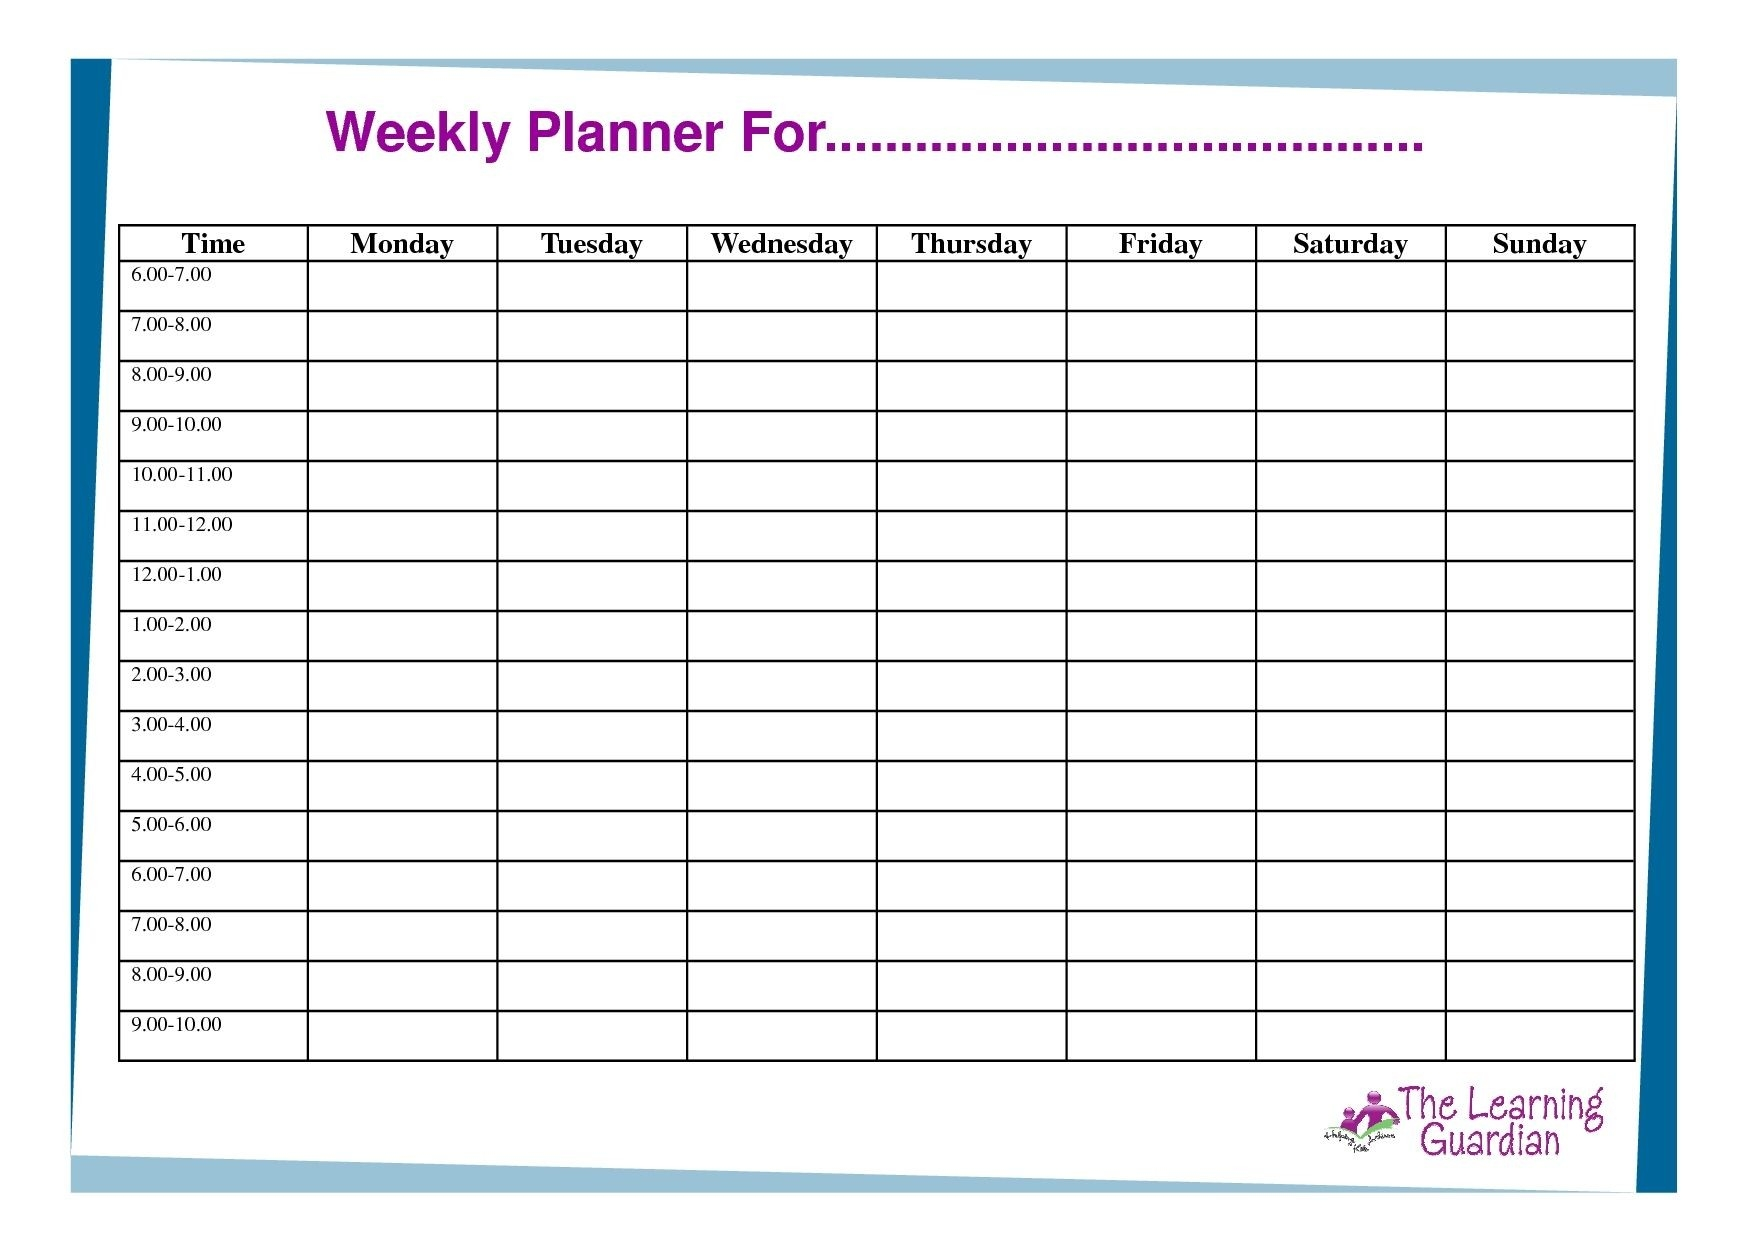 Free Printable Weekly Calendar Templates Planner For Time  7 Day Planner Printable